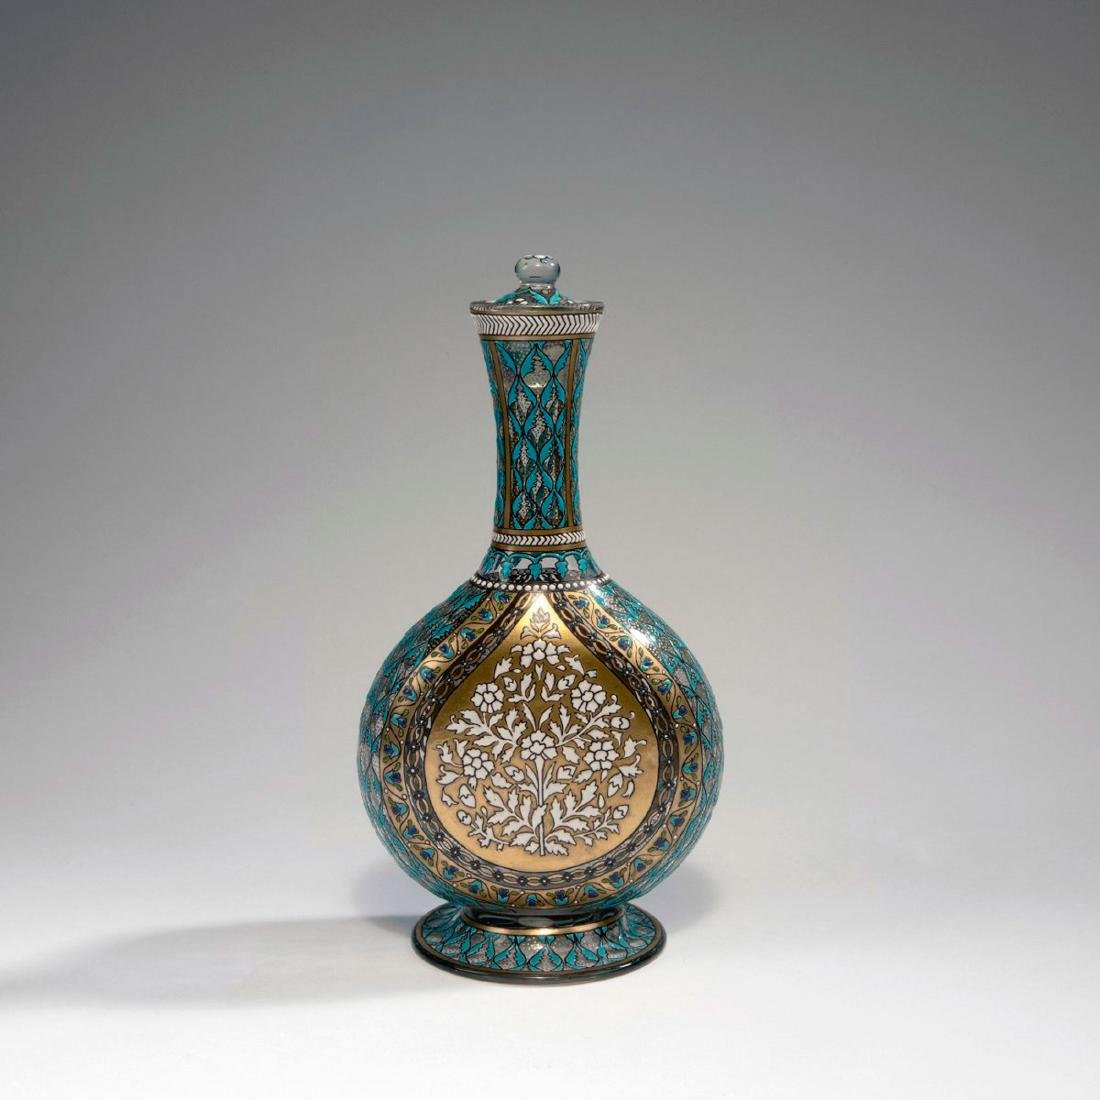 Flacon, dated 1883